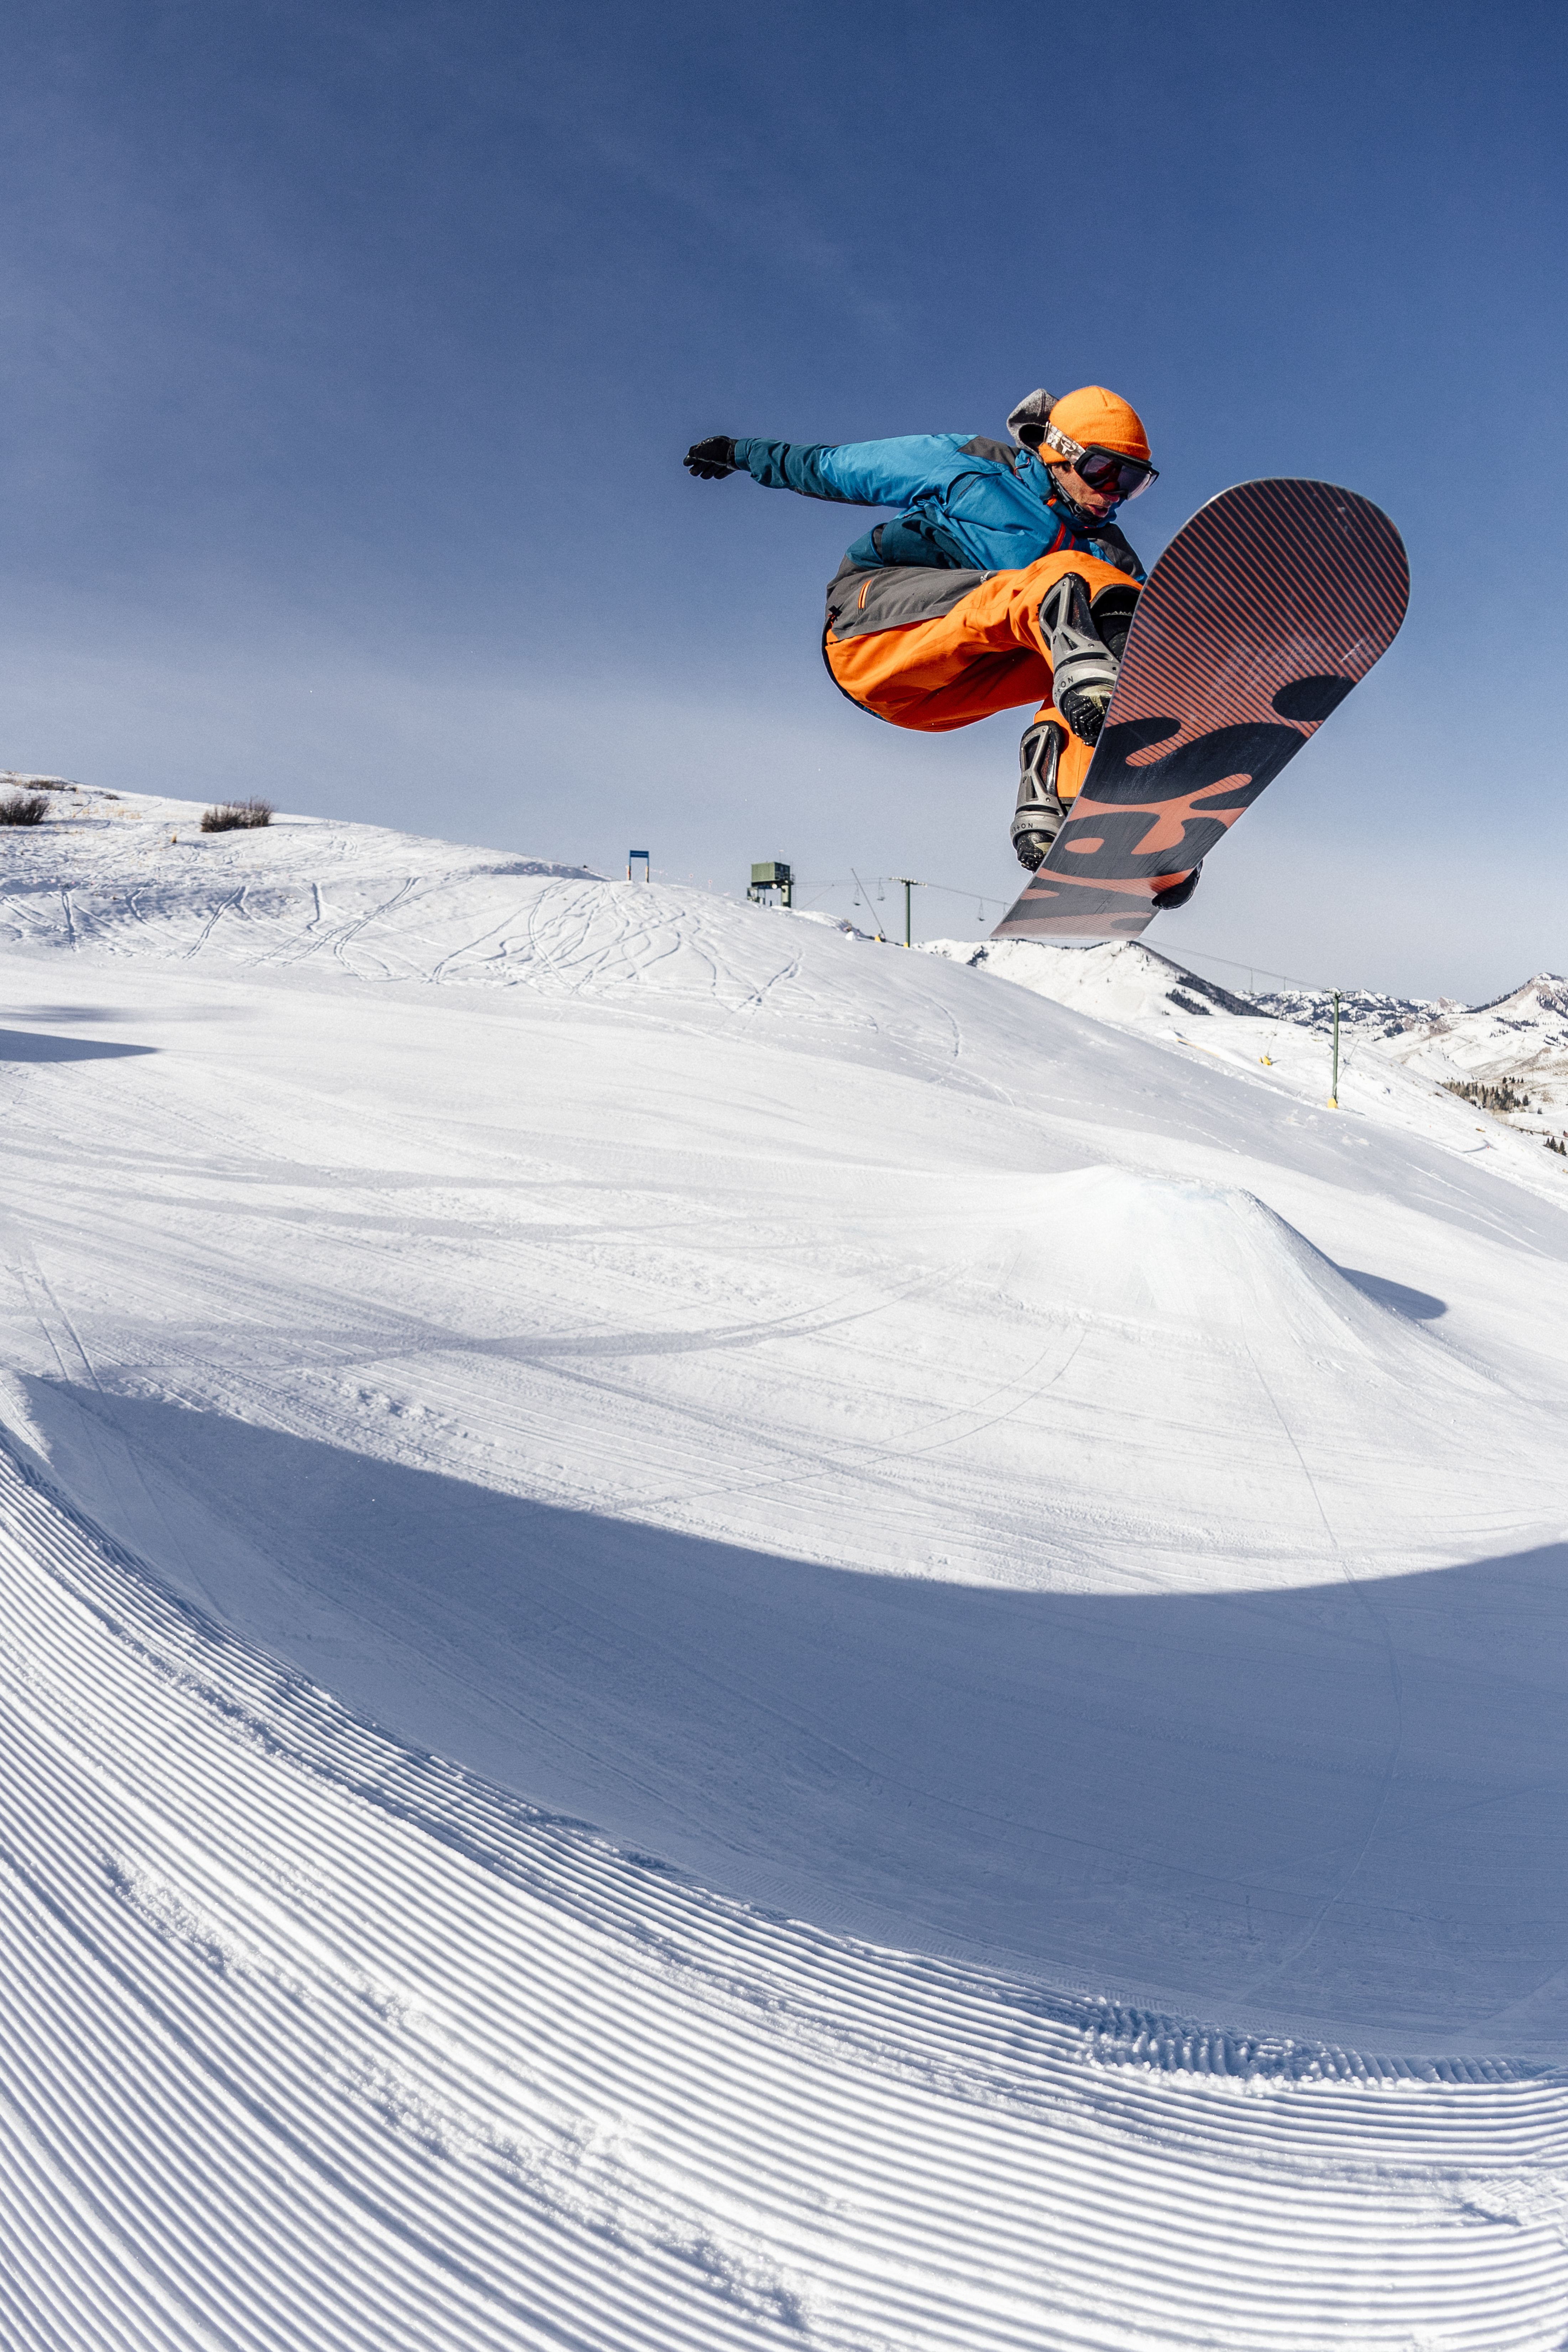 Date: February 2018Photo Credit: Courtesy Sun Valley ResortPhotographer: ? Tal RobertsPhoto Caption: Terrain Park on Dollar Mountain.